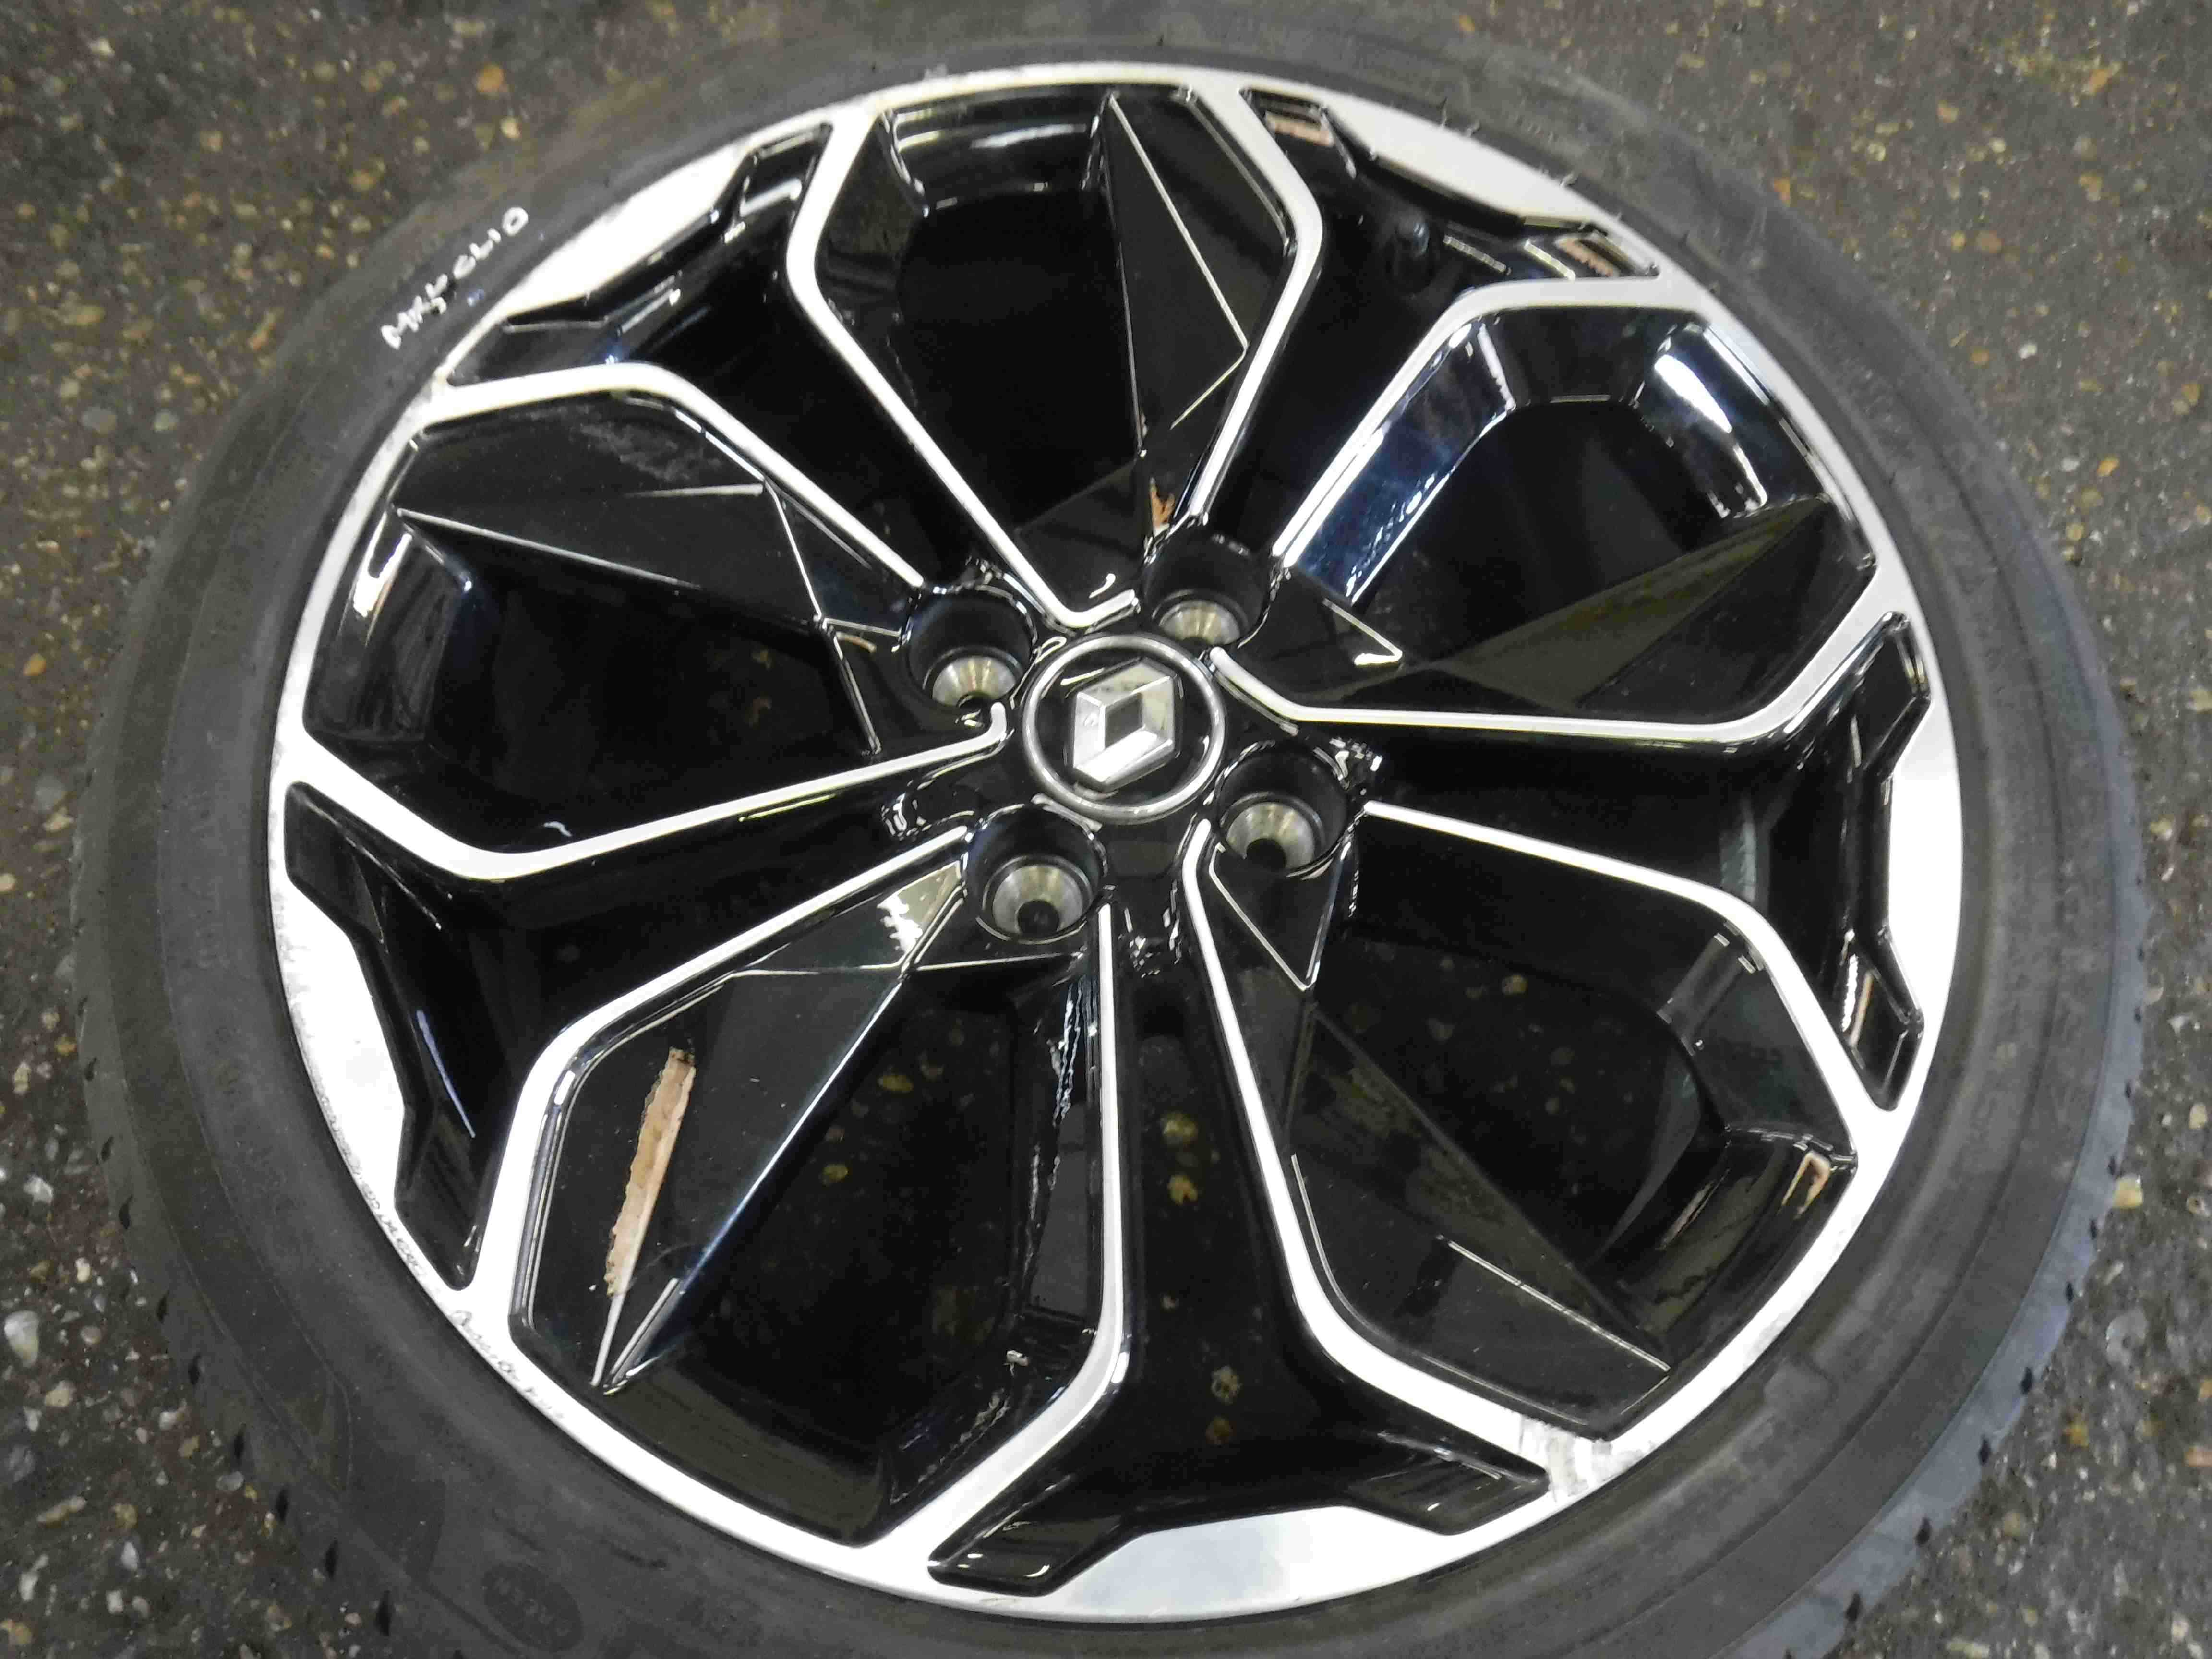 Renault Clio MK4 2013-2018 Alloy Wheel Optemic 45 205 45 17 6mm 403001878R